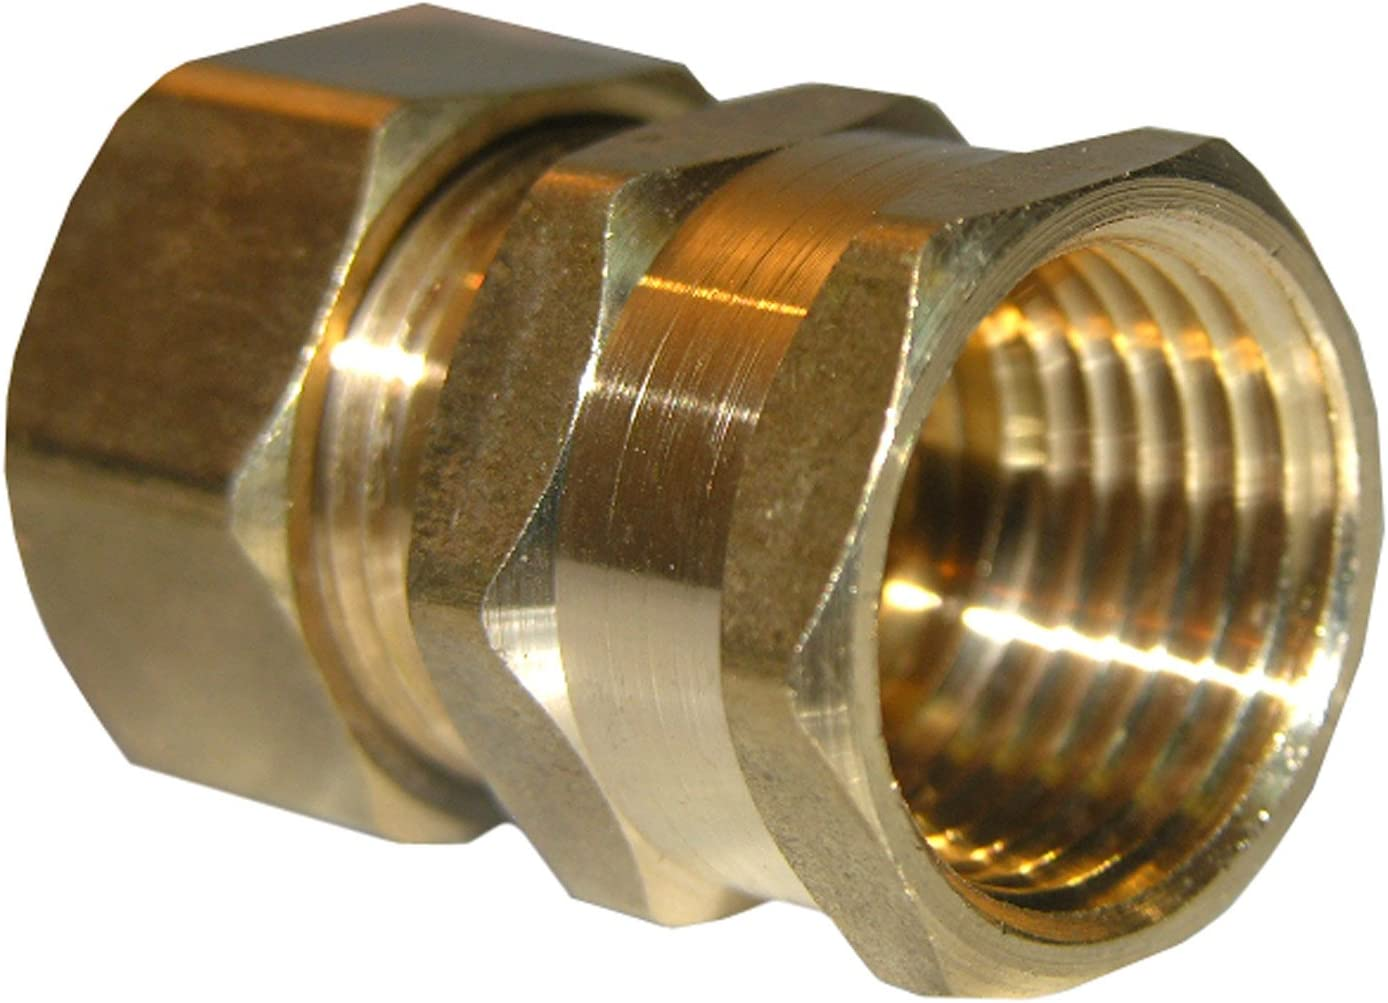 Midland 18-158LF Lead Free Brass Compression Female Adapter 1//2 Compression x 3//8 Female NPTF Thread